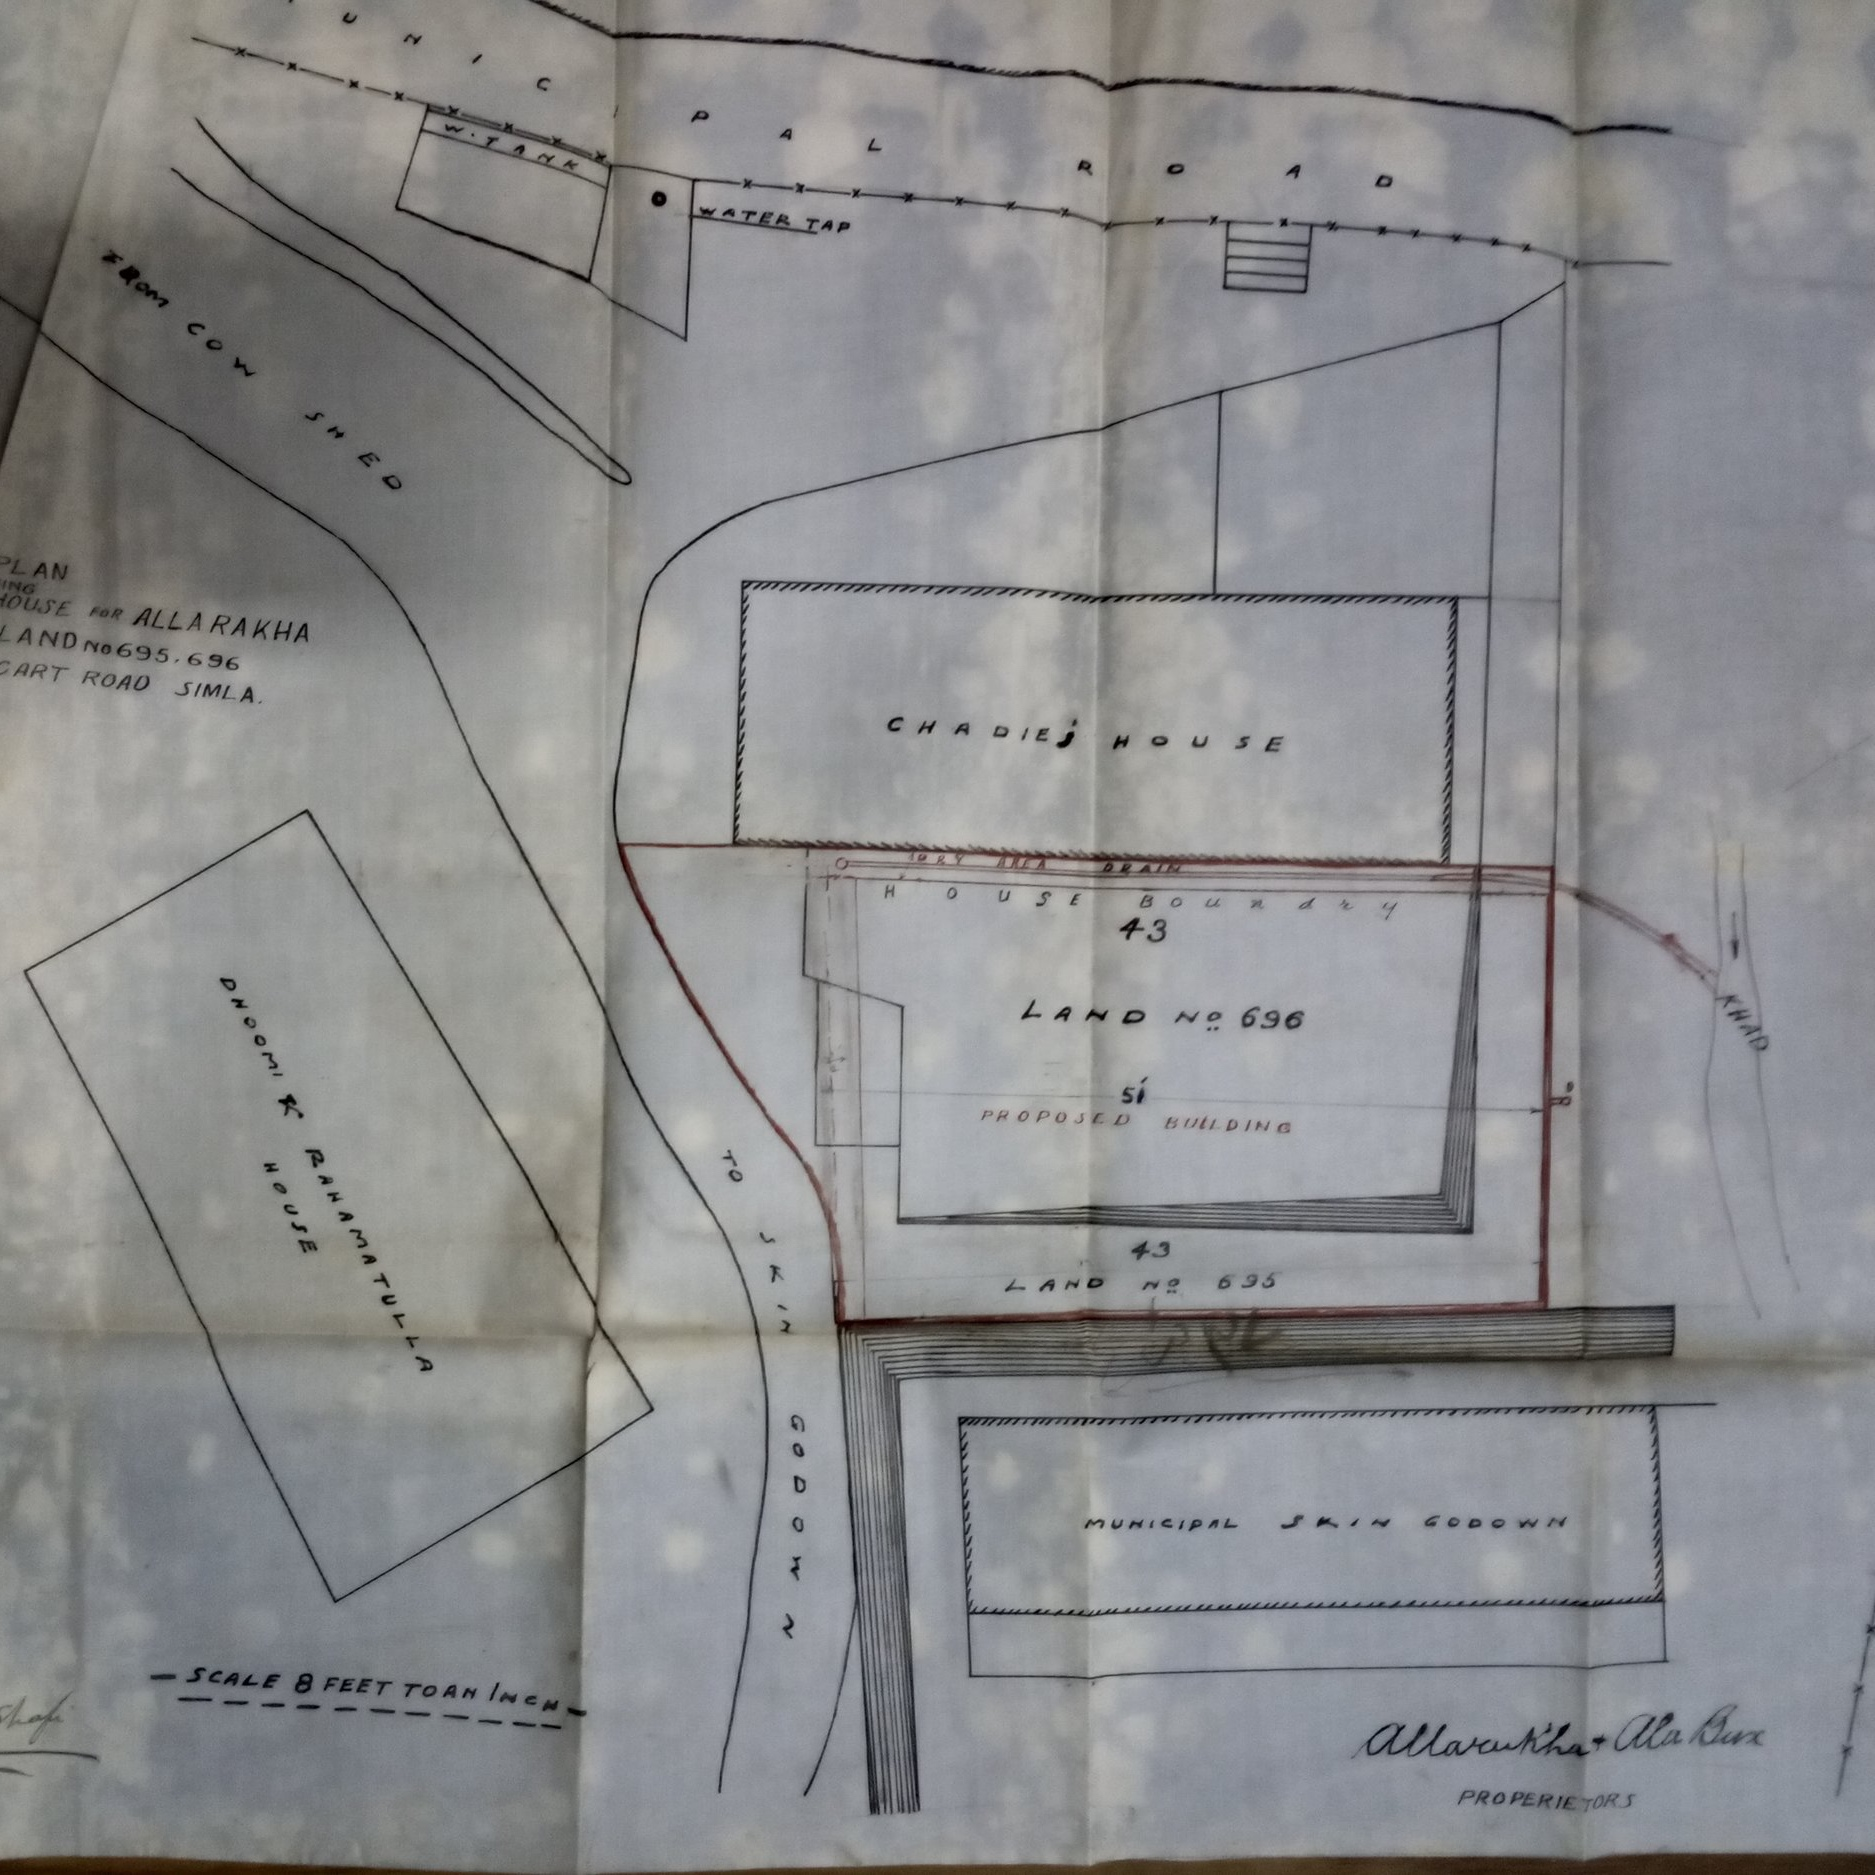 Site plan of building near Slaughter House